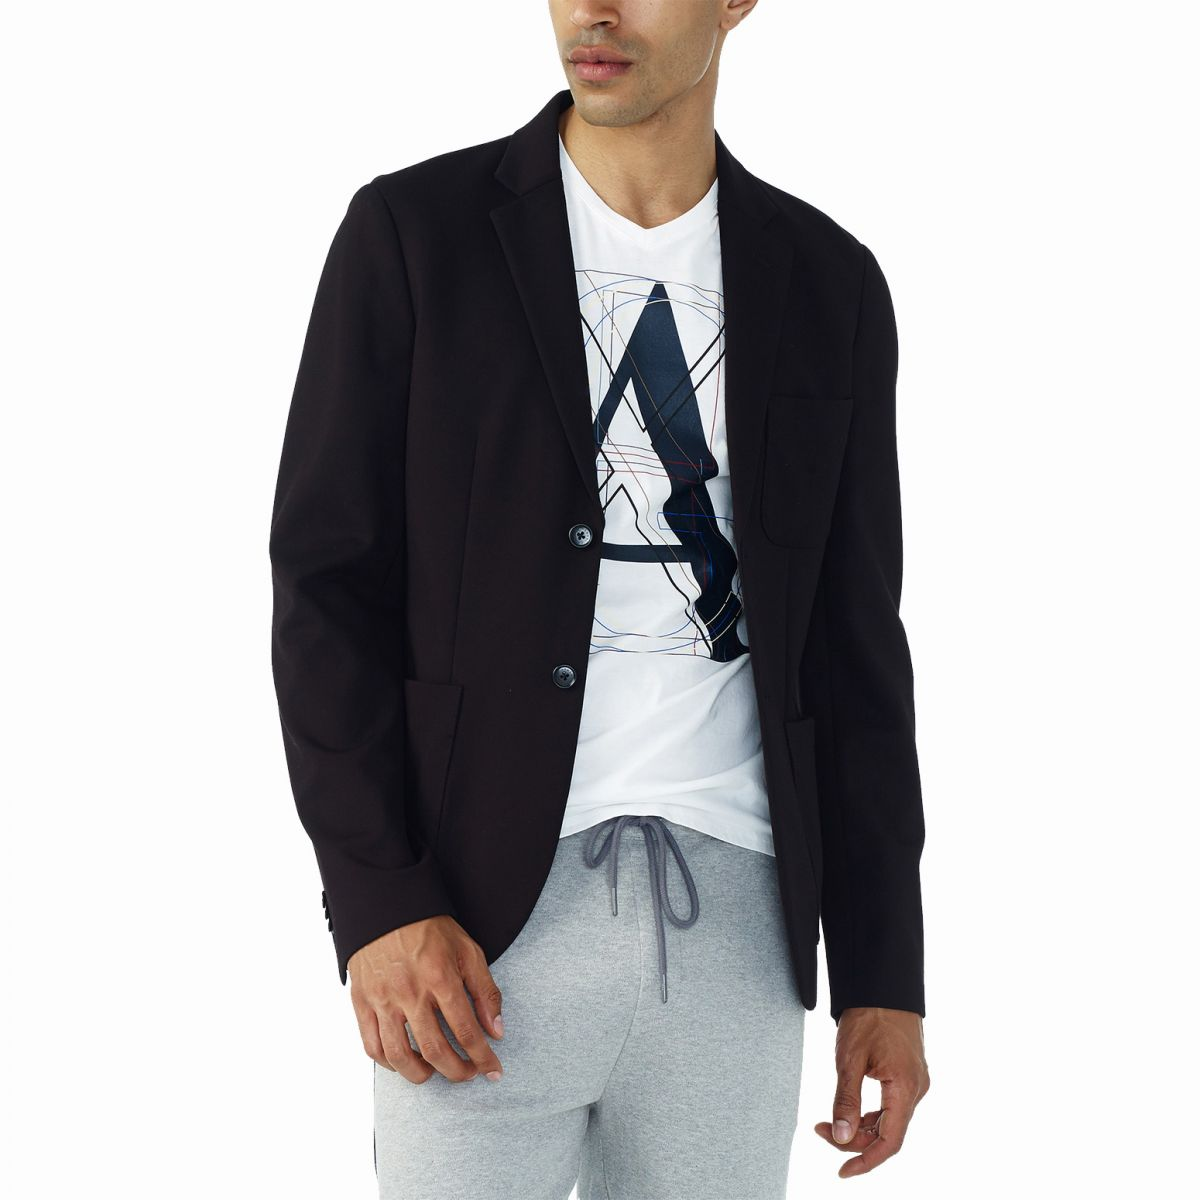 Armani exchange men 39 s designer clothes fashion apparel Designer clothing for men online sales